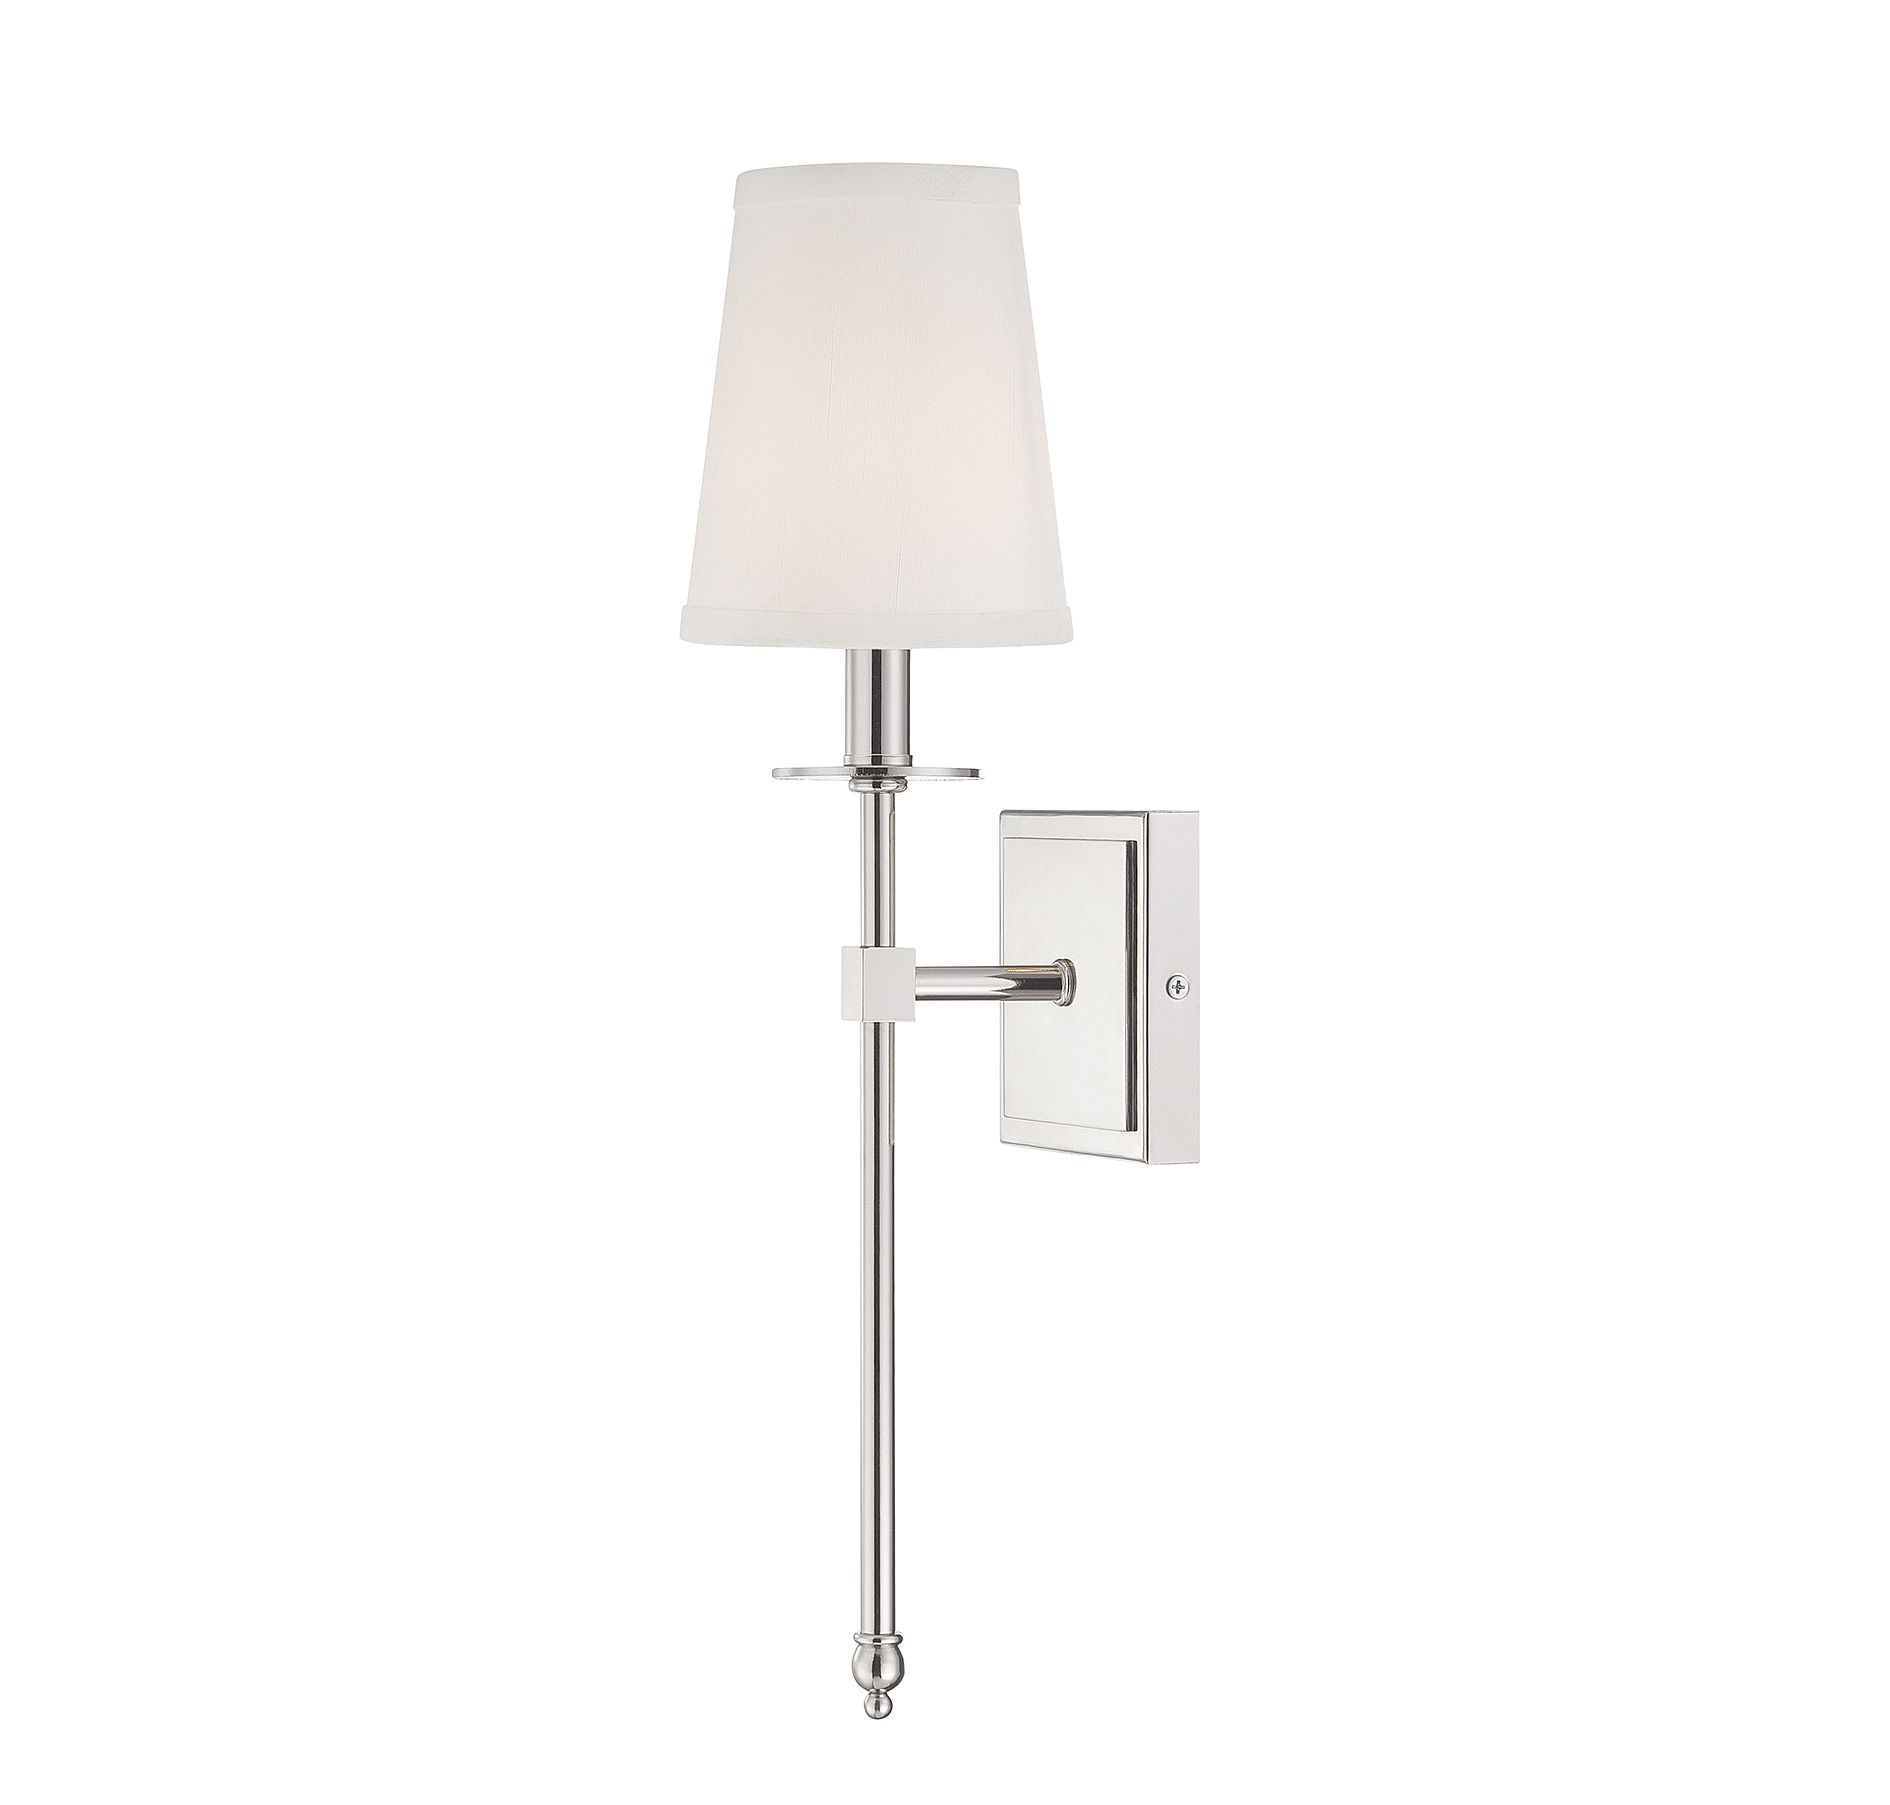 Monroe 1 Light Sconce Size Small Polished Nickel Finish Small Polished Nickel In 2020 Monroe Wall Sconce Bathroom Sconce Lighting Wall Sconce Lighting